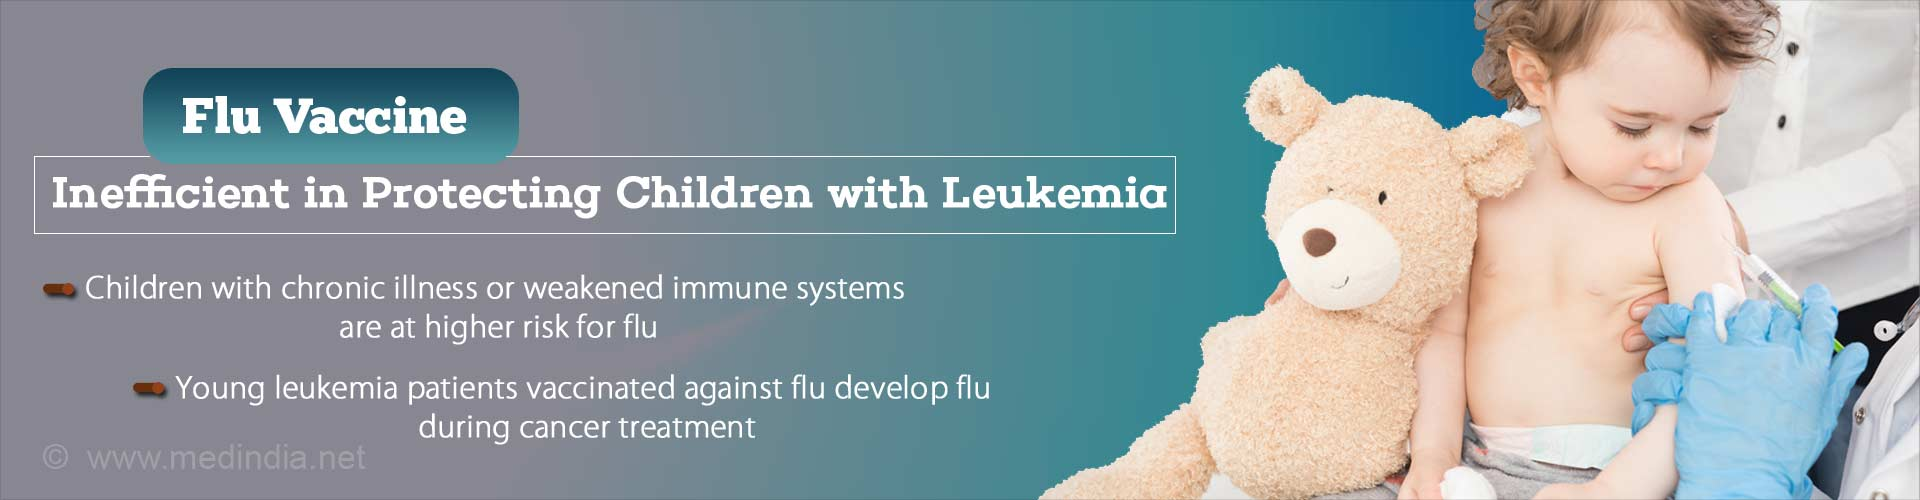 Flu Vaccine Fails To Protect Children With Leukemia